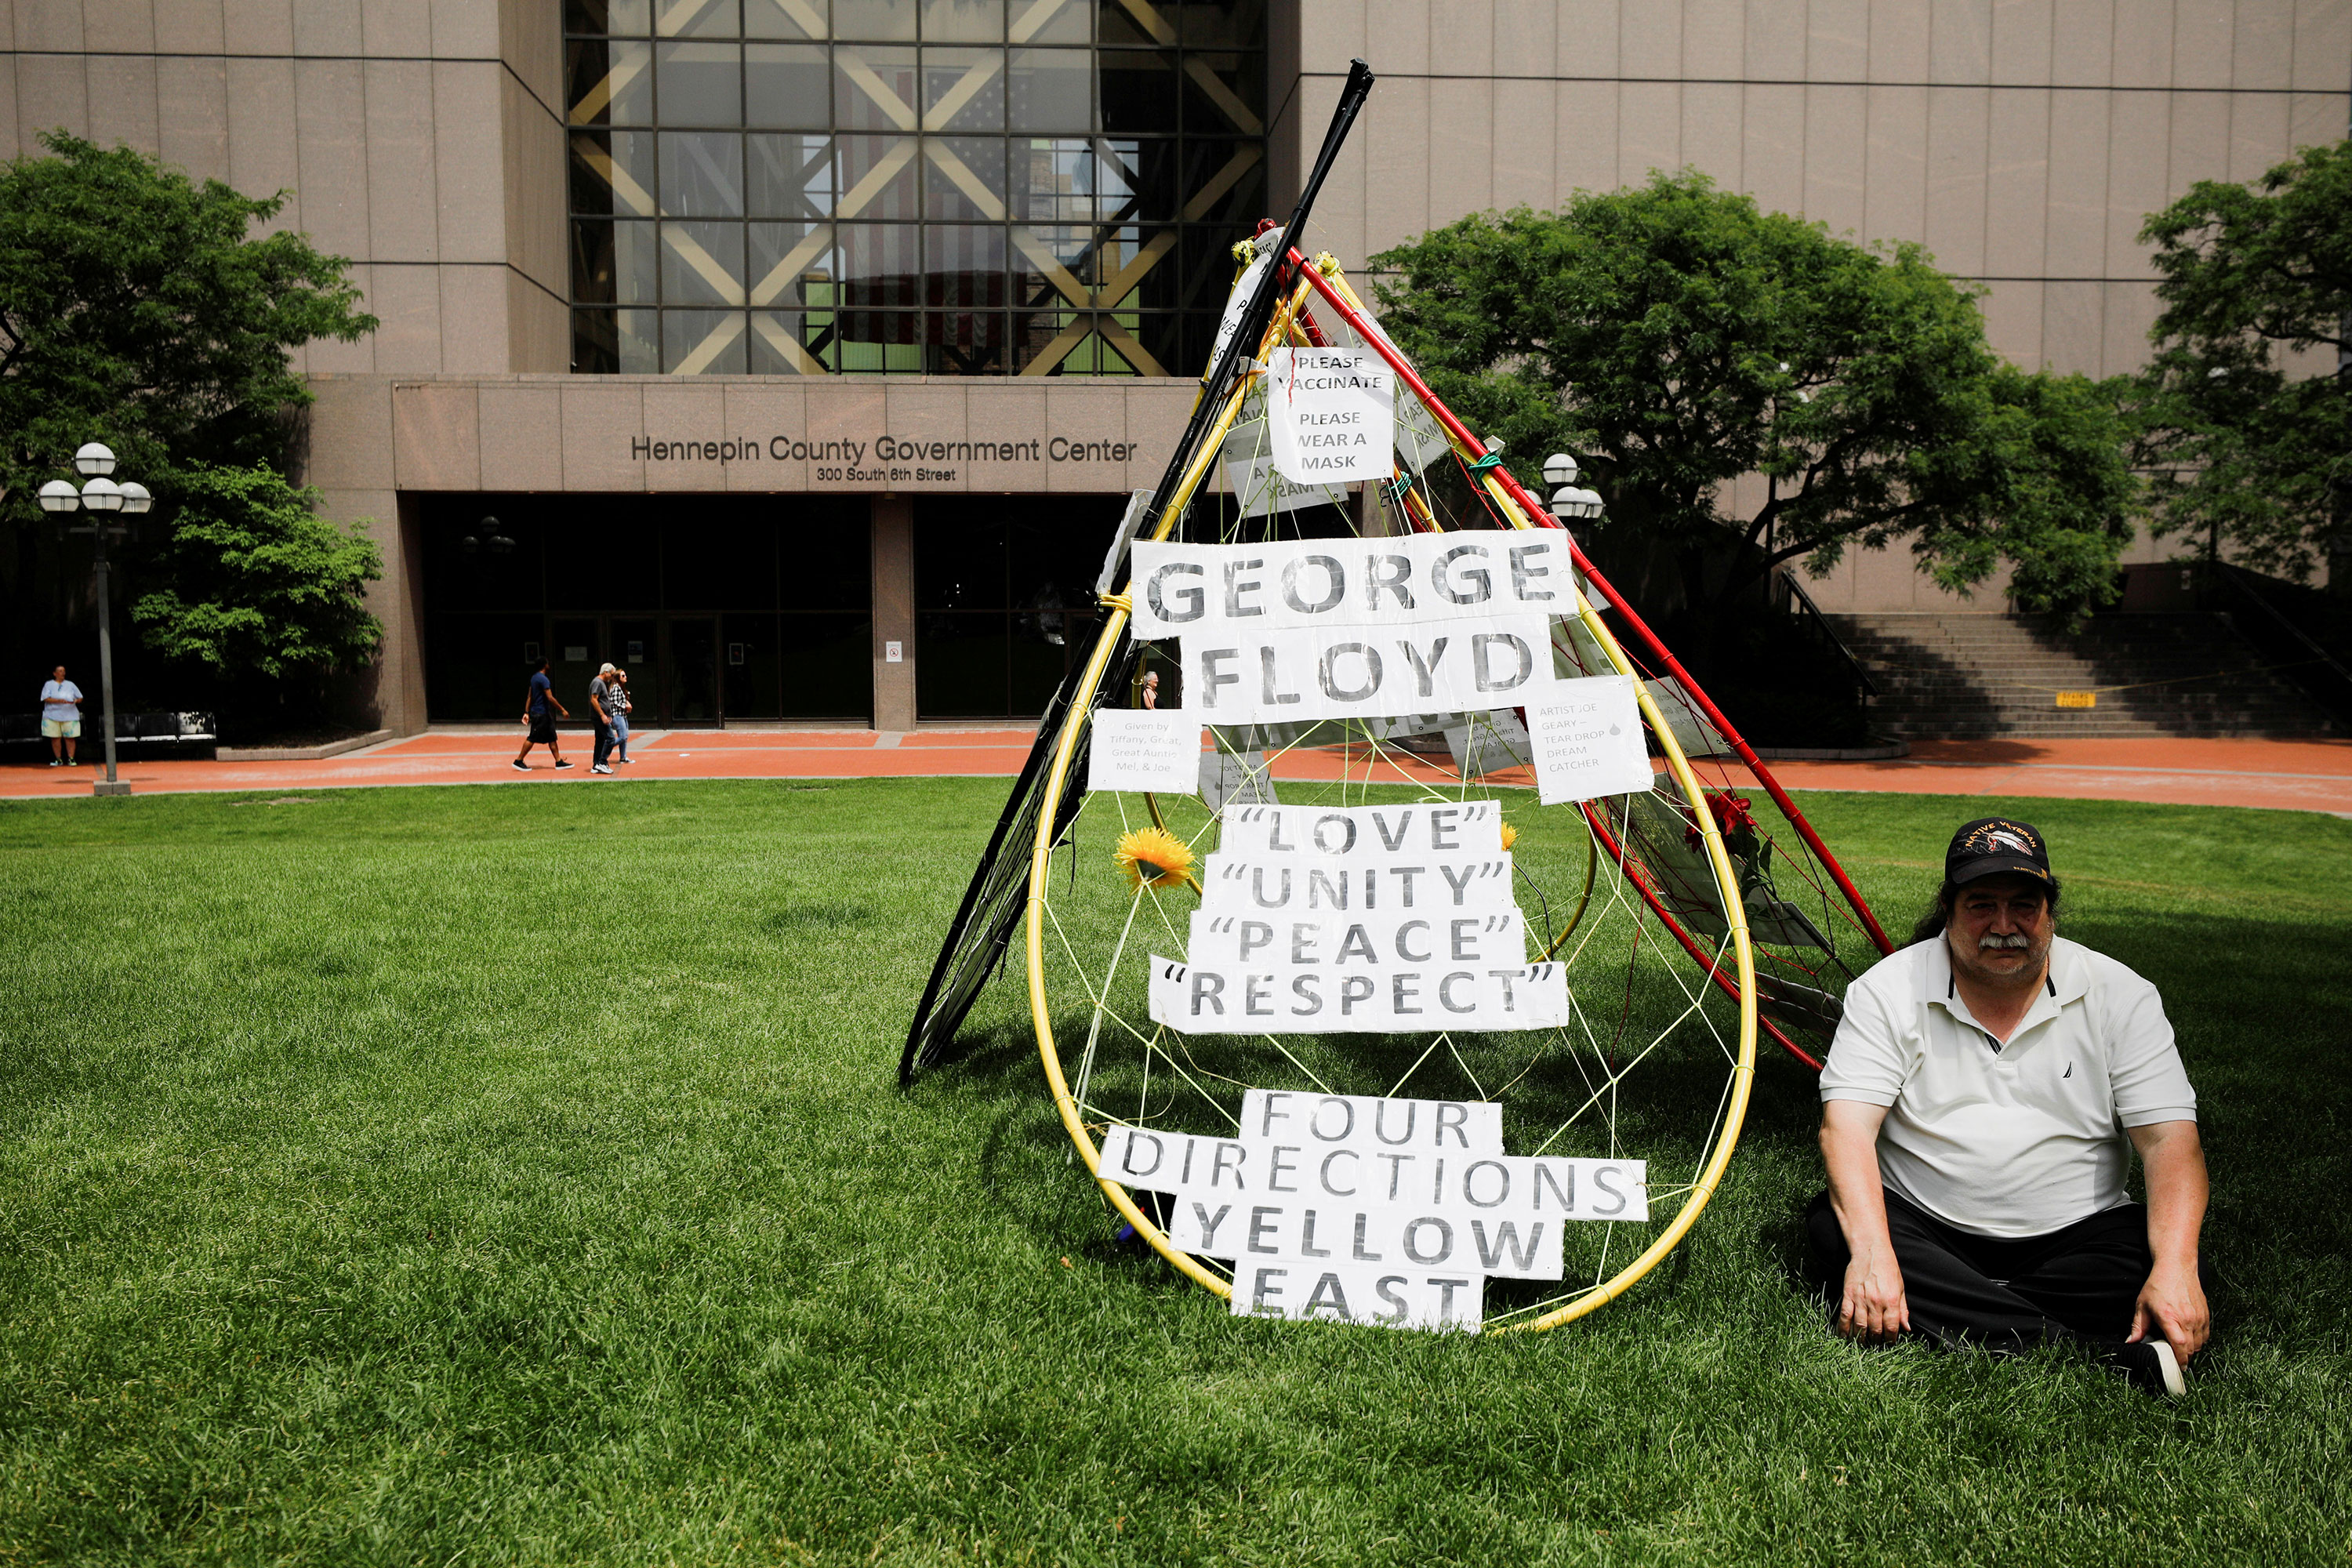 A person waits outside Hennepin County Government Center ahead of the sentencing.